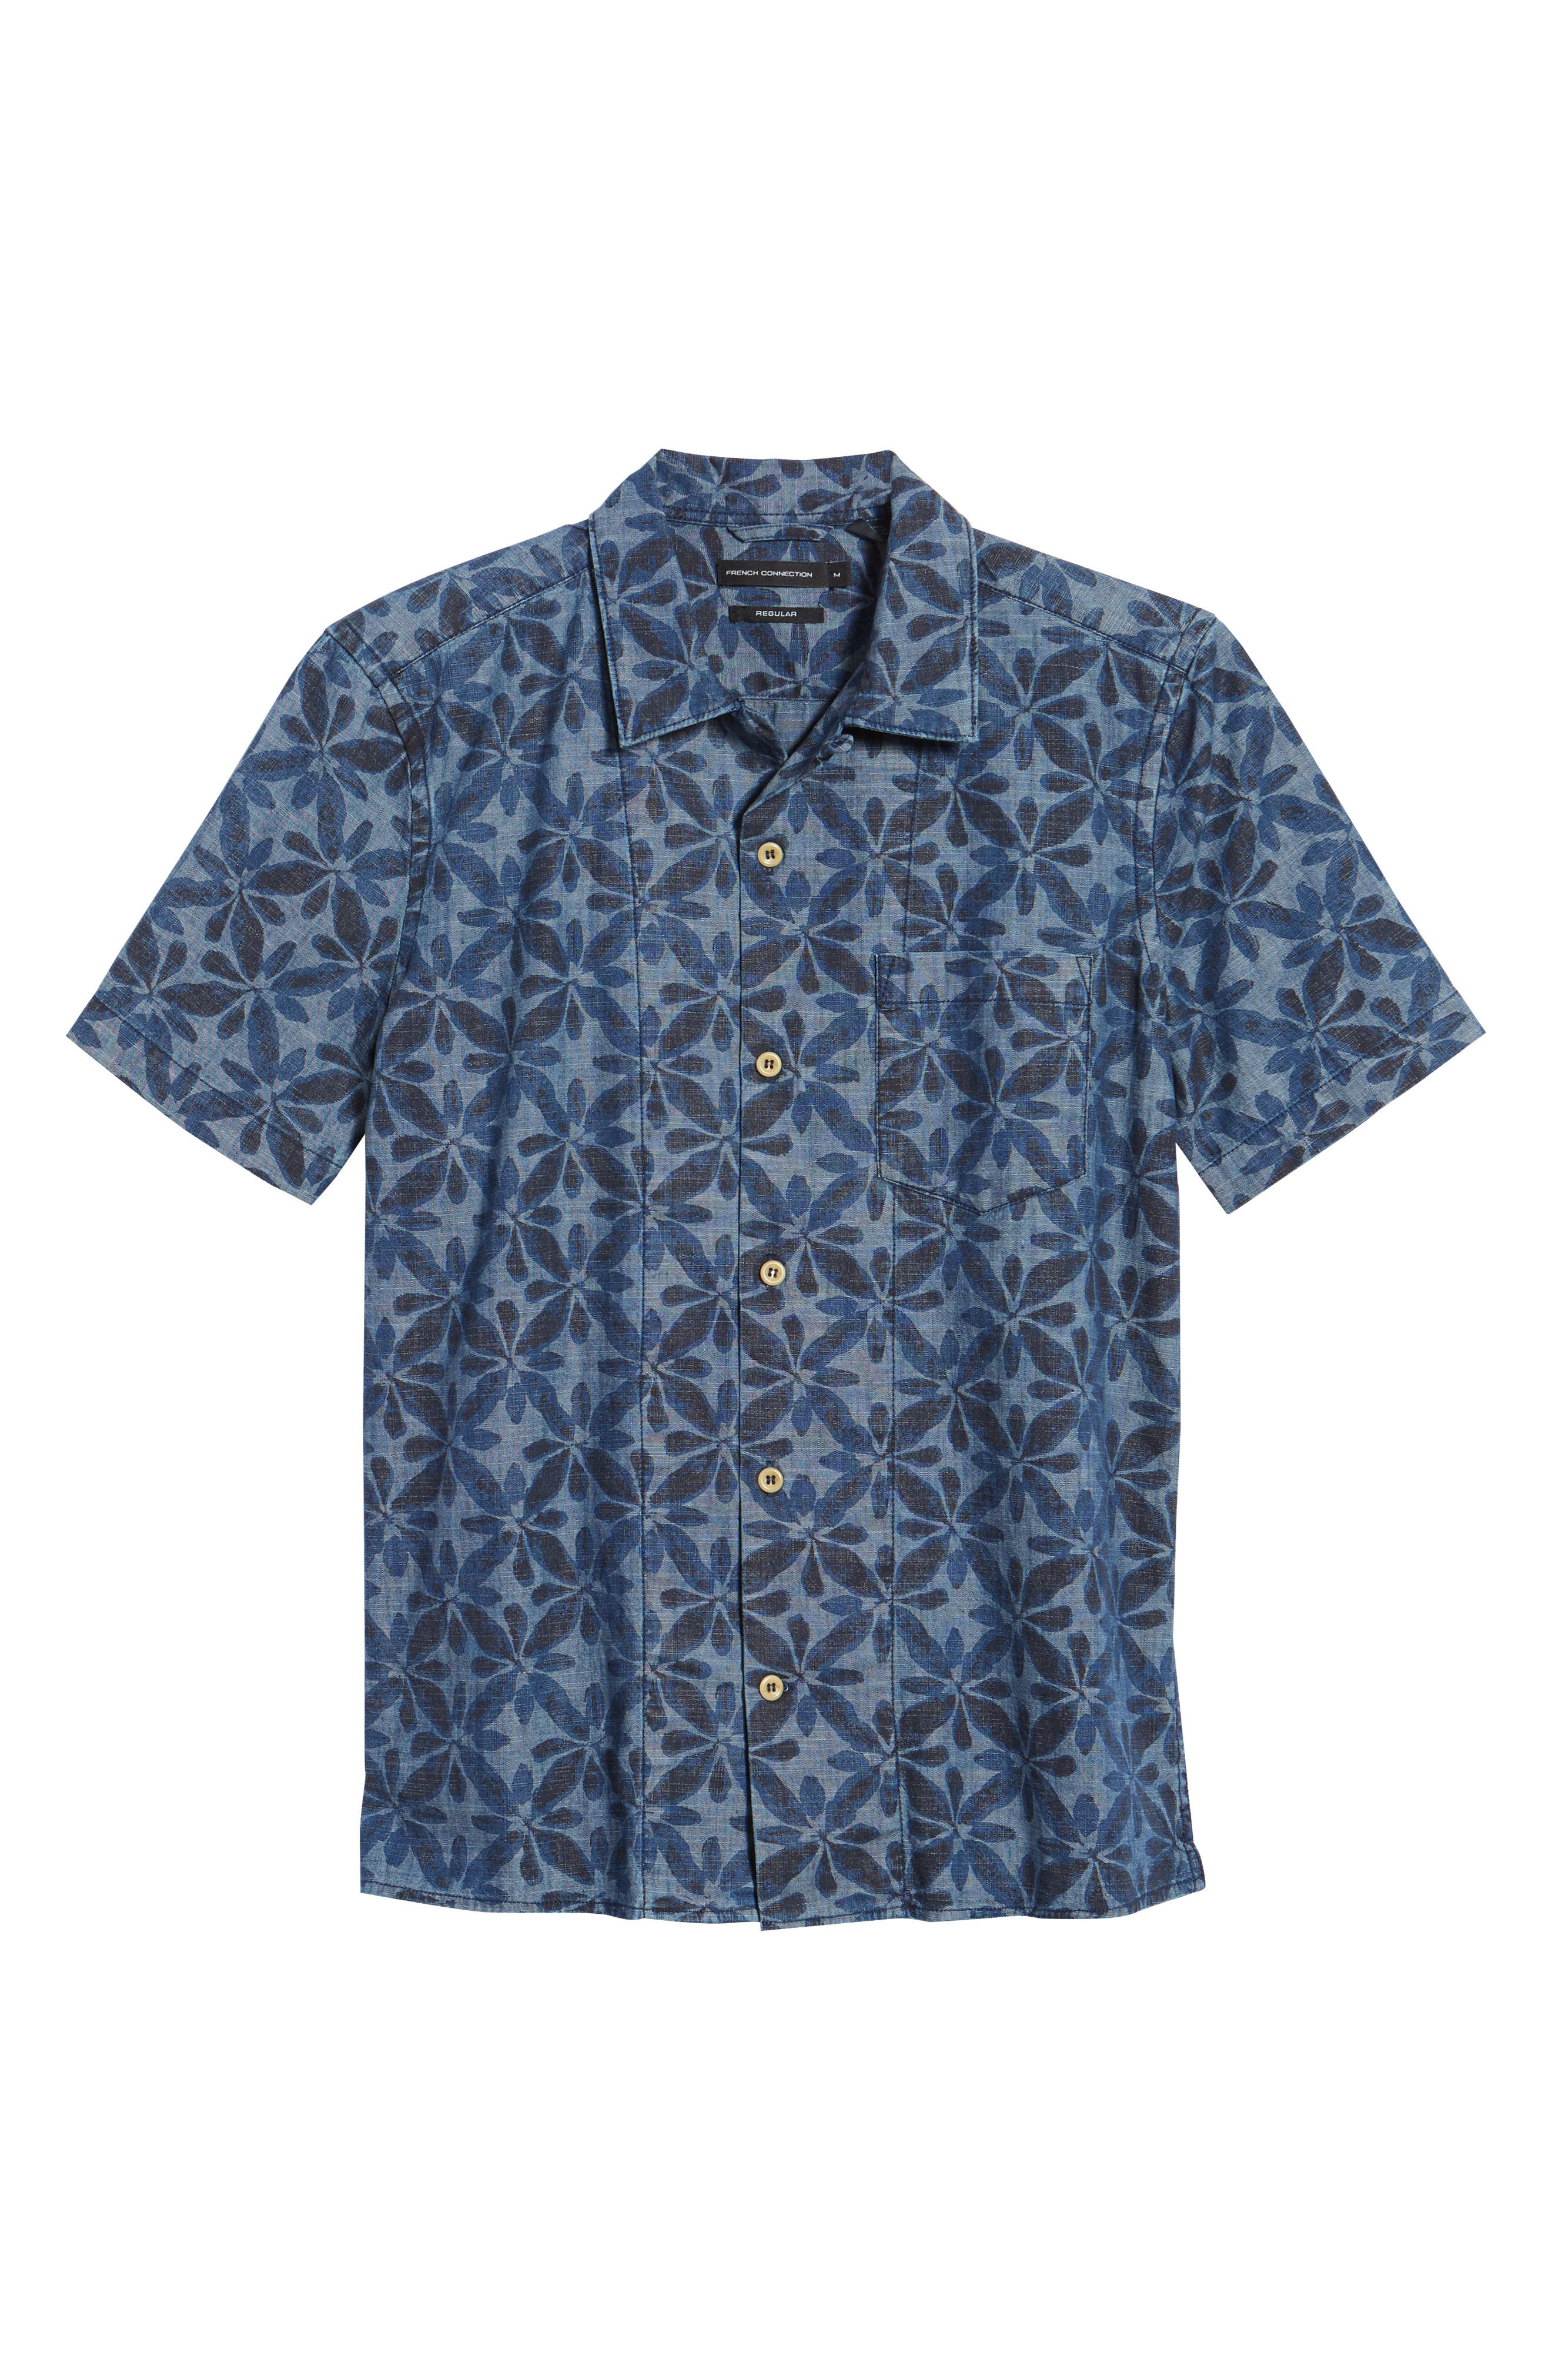 Franju Floral Slim Fit Woven Shirt,                             Alternate thumbnail 6, color,                             Rinse And Softener